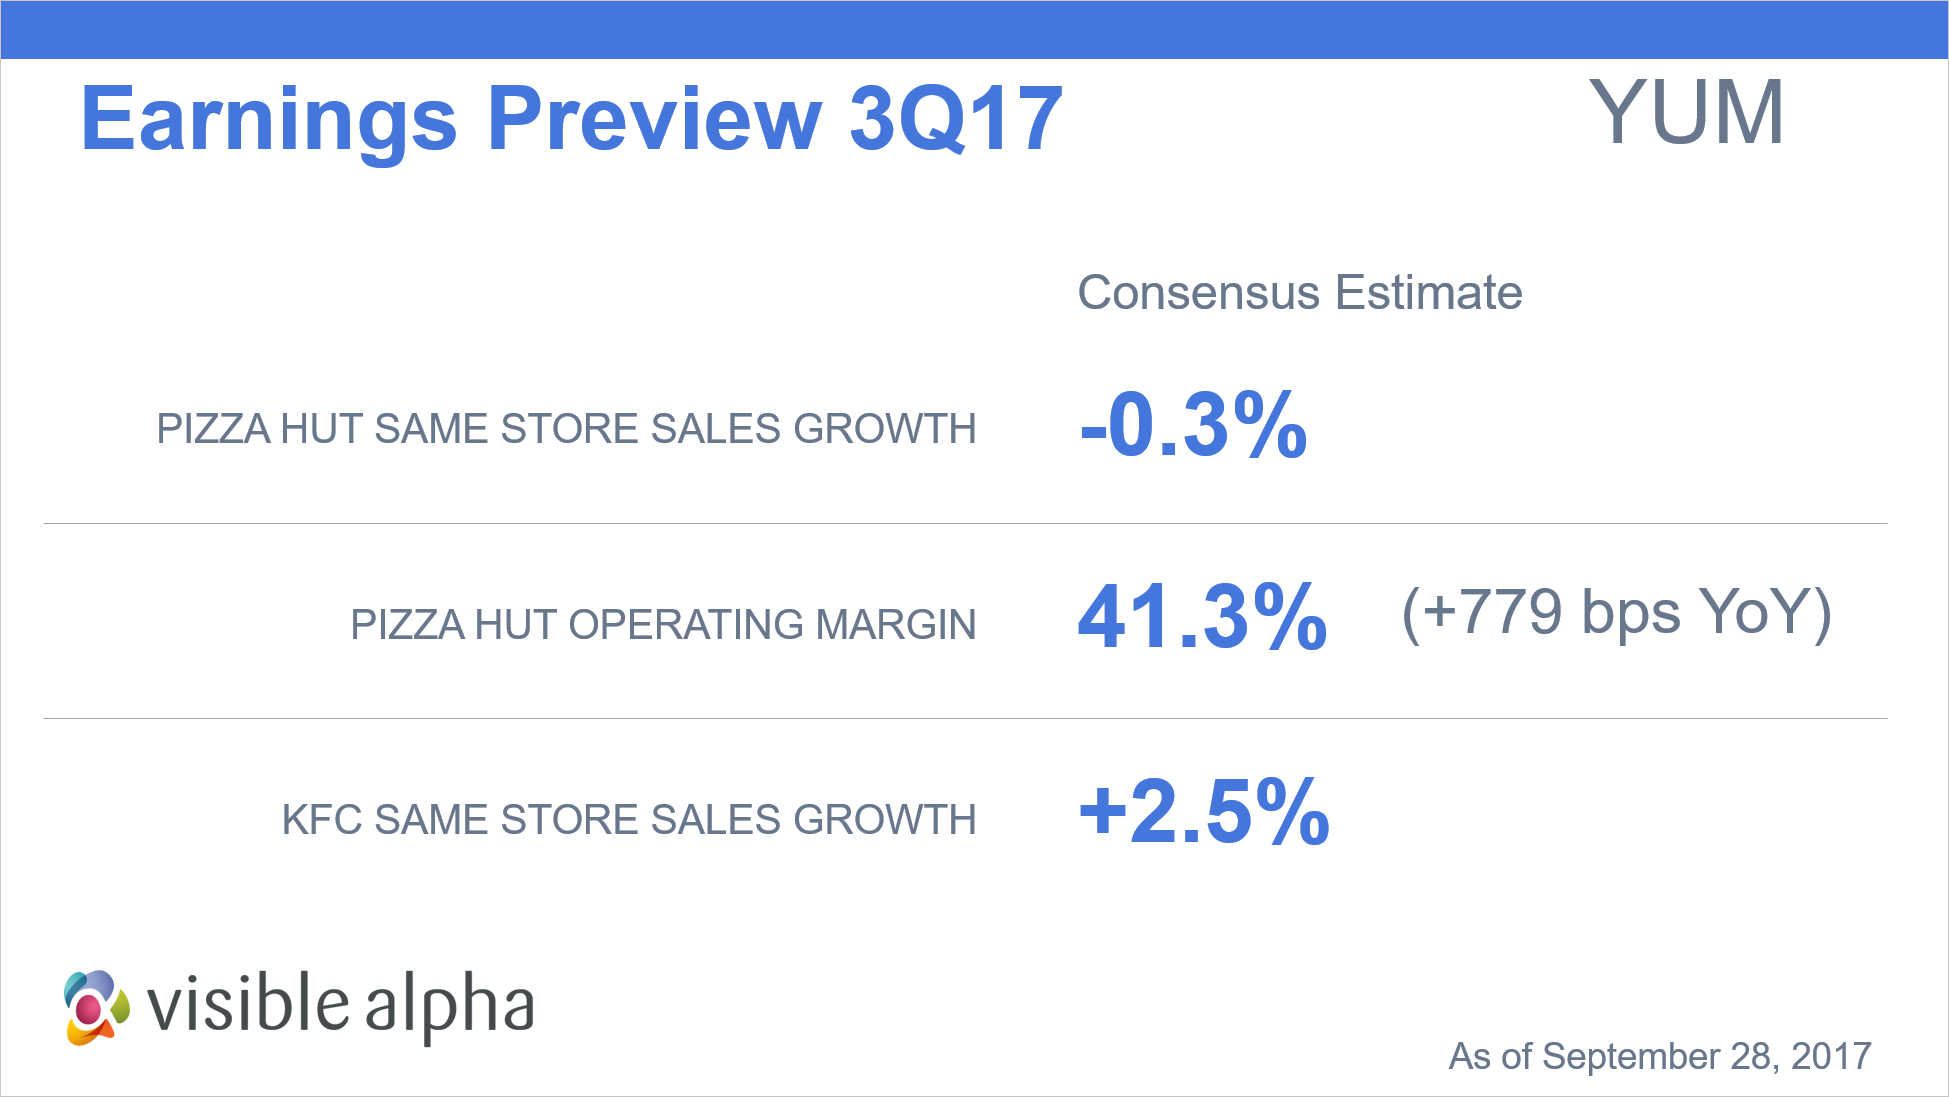 YUM Earnings Preview 3Q17 by Visible Alpha